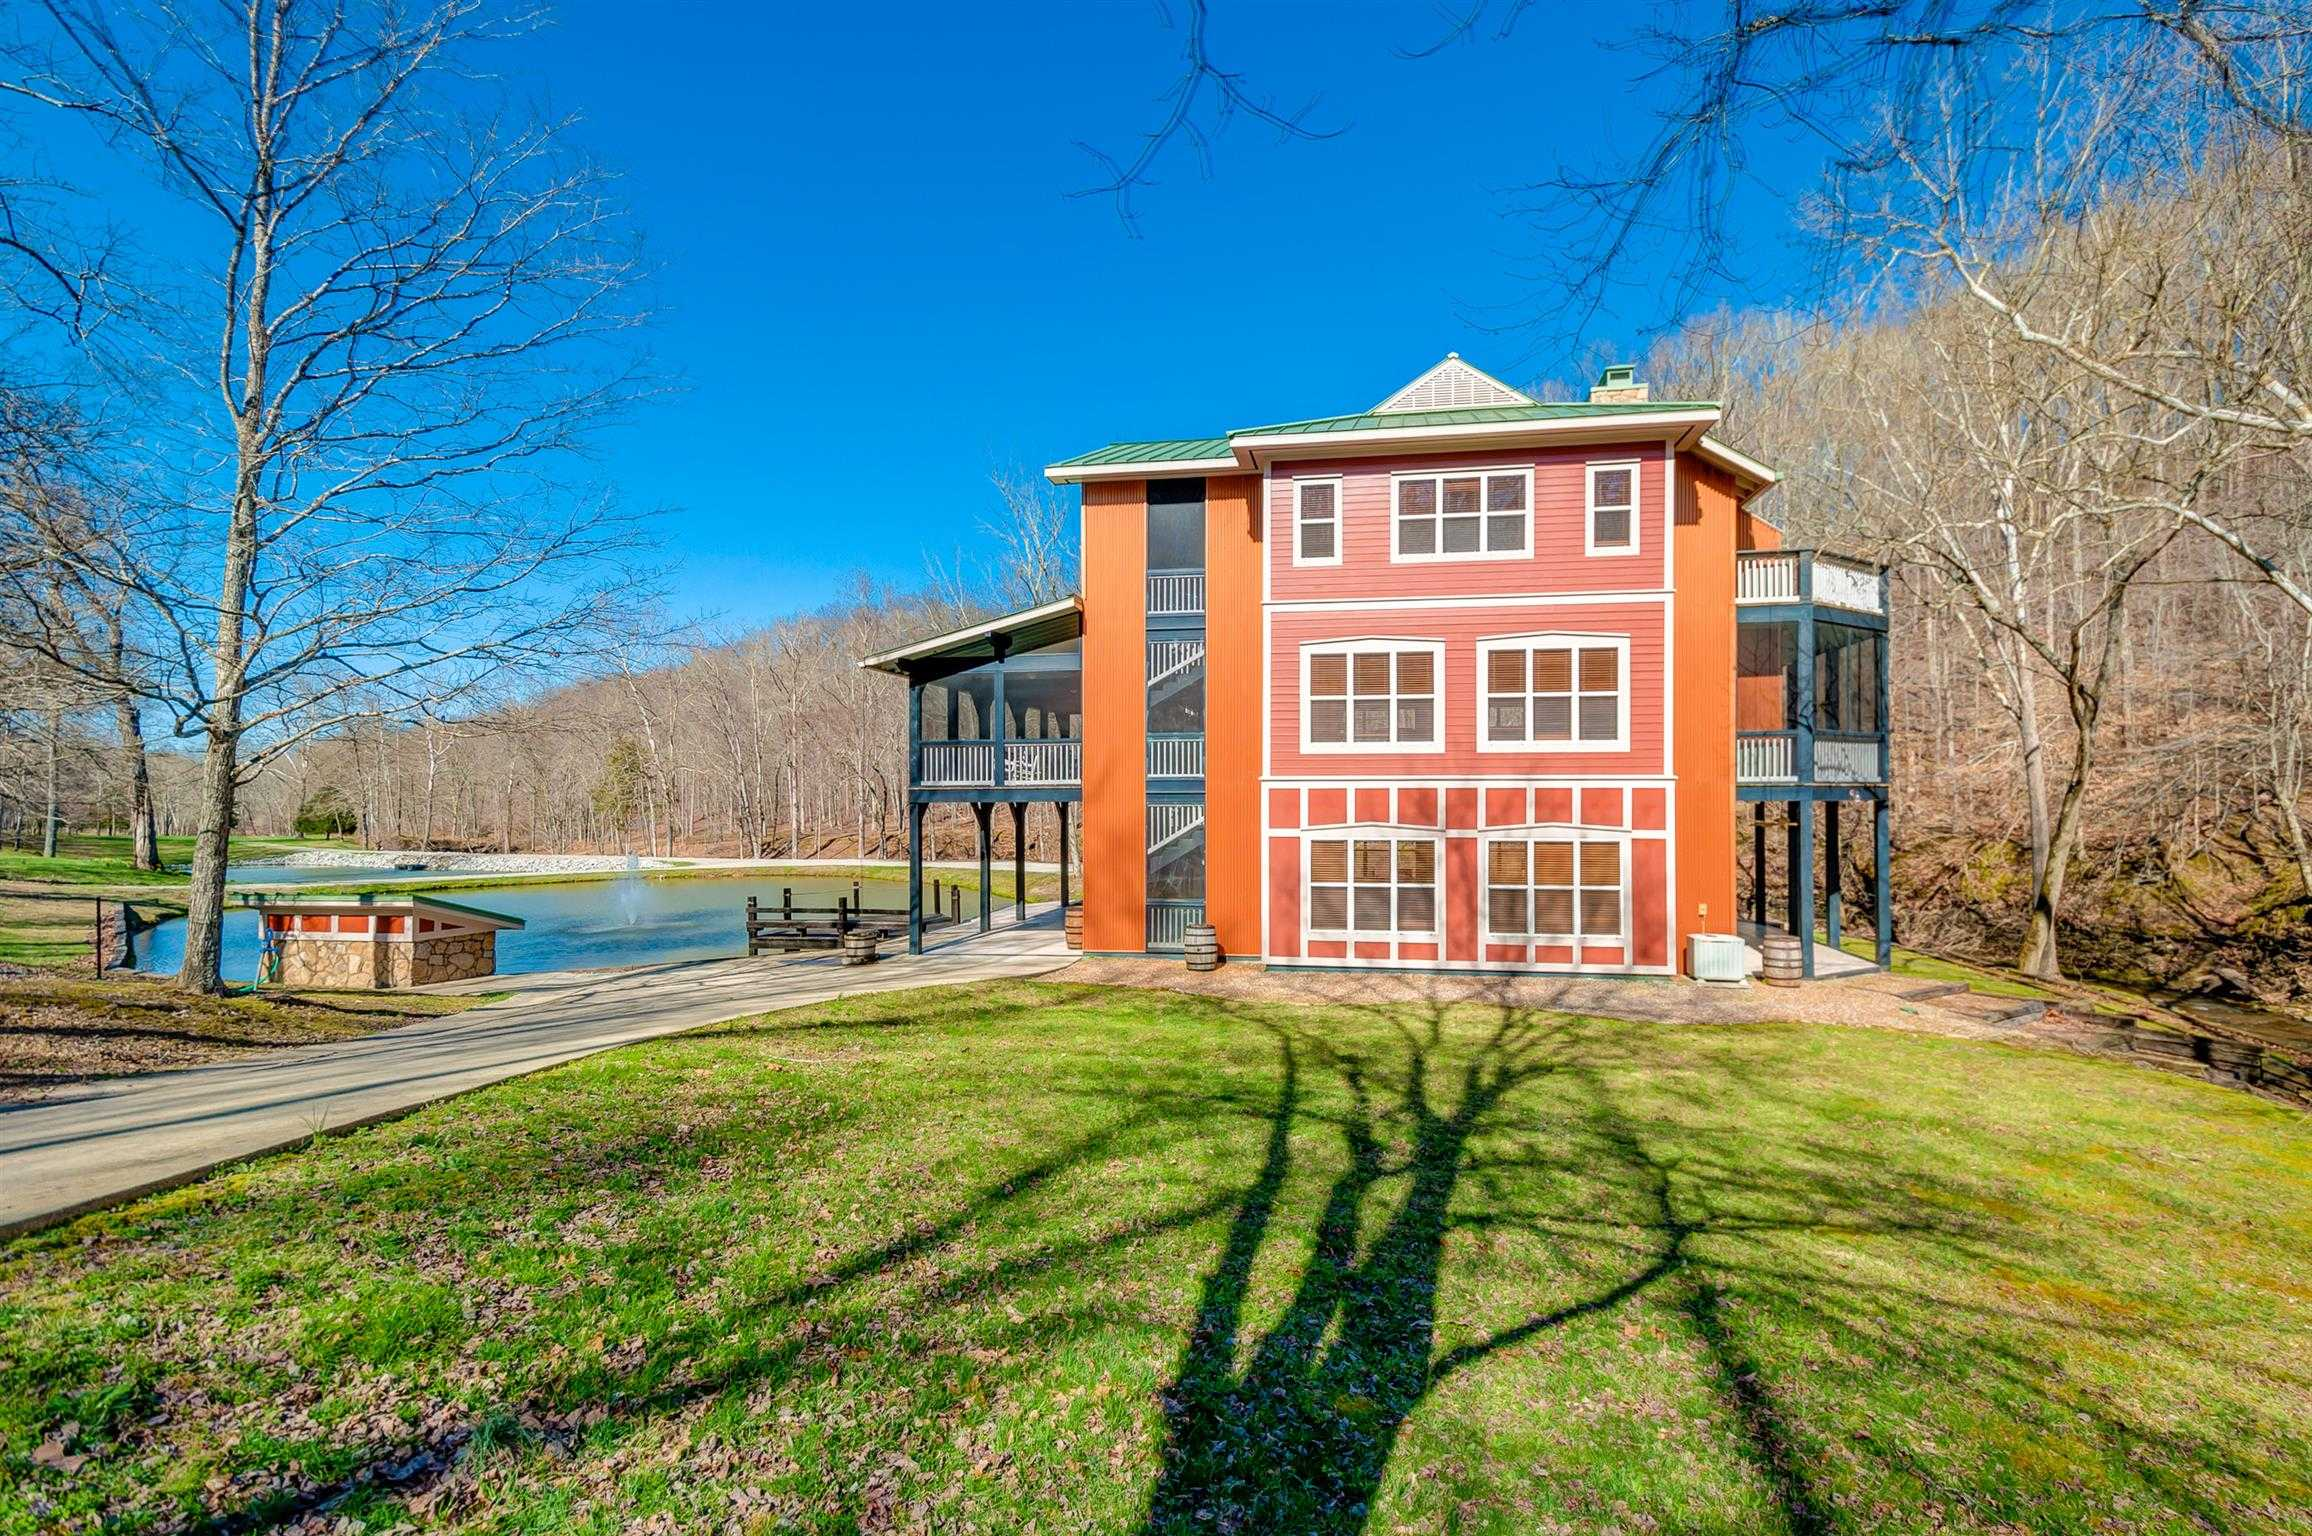 $1,820,000 - 2Br/3Ba -  for Sale in 133 Ac W/ Unique Home, Franklin